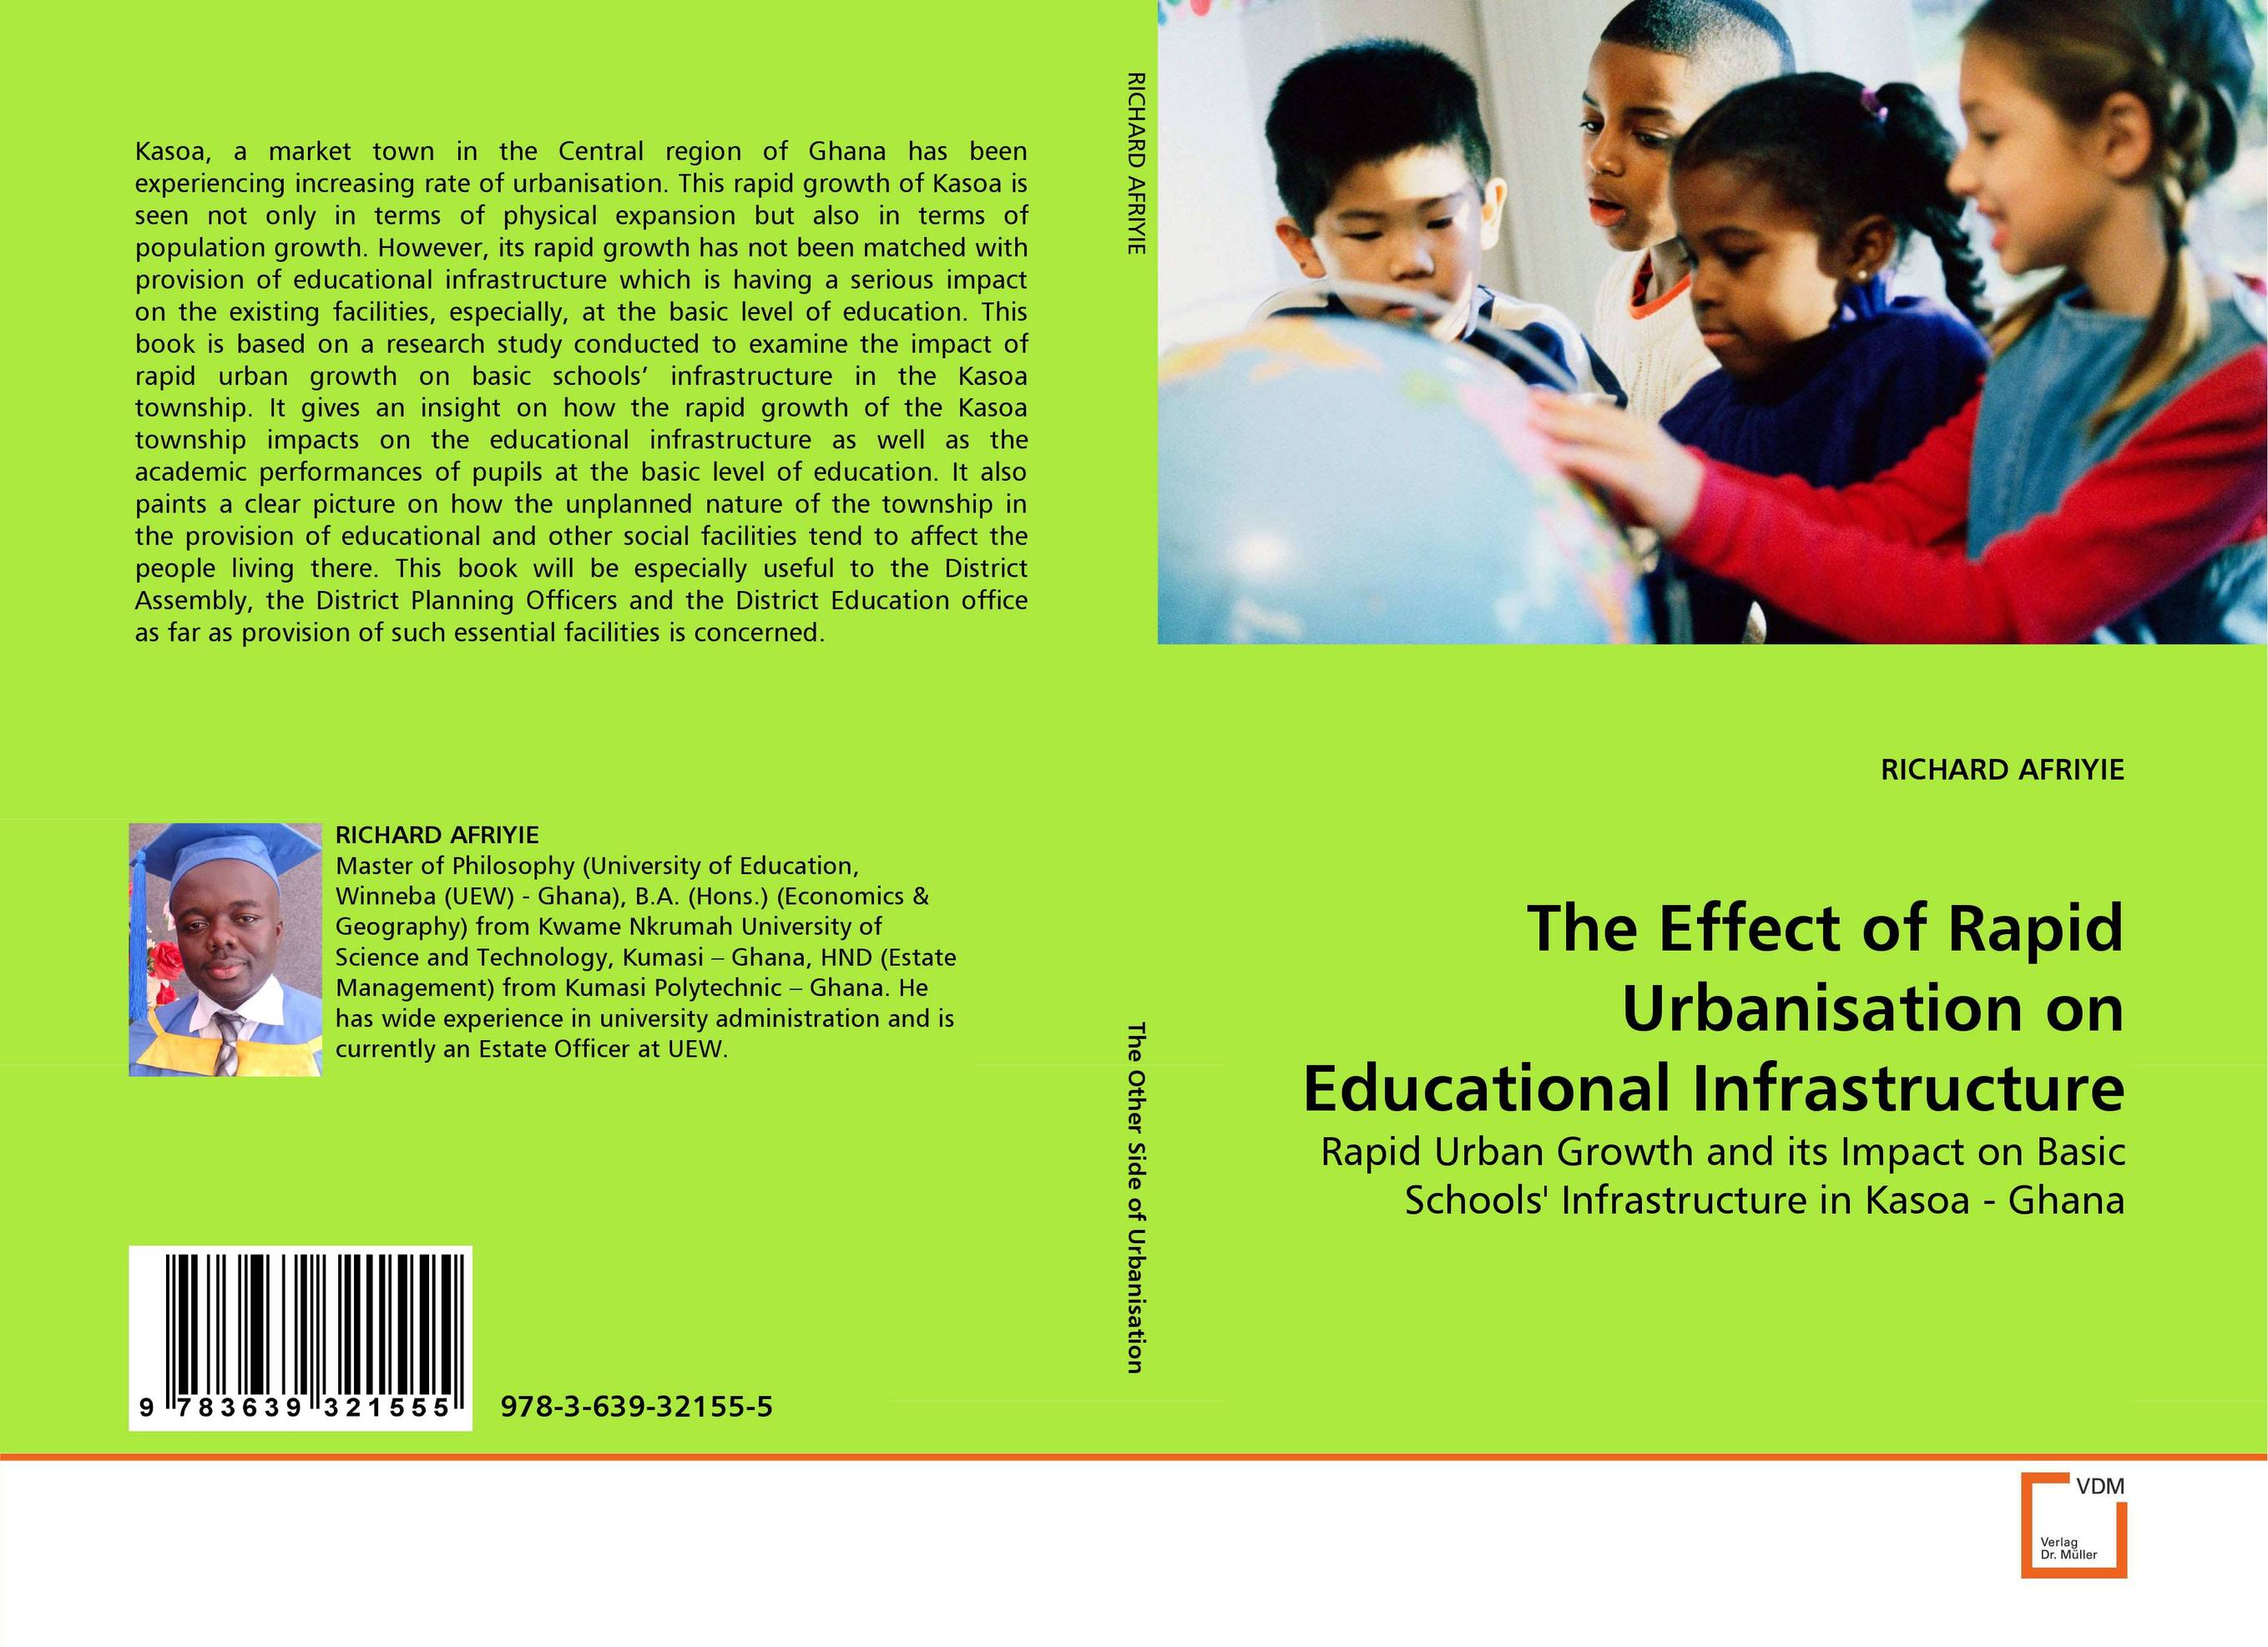 The Effect of Rapid Urbanisation on Educational Infrastructure